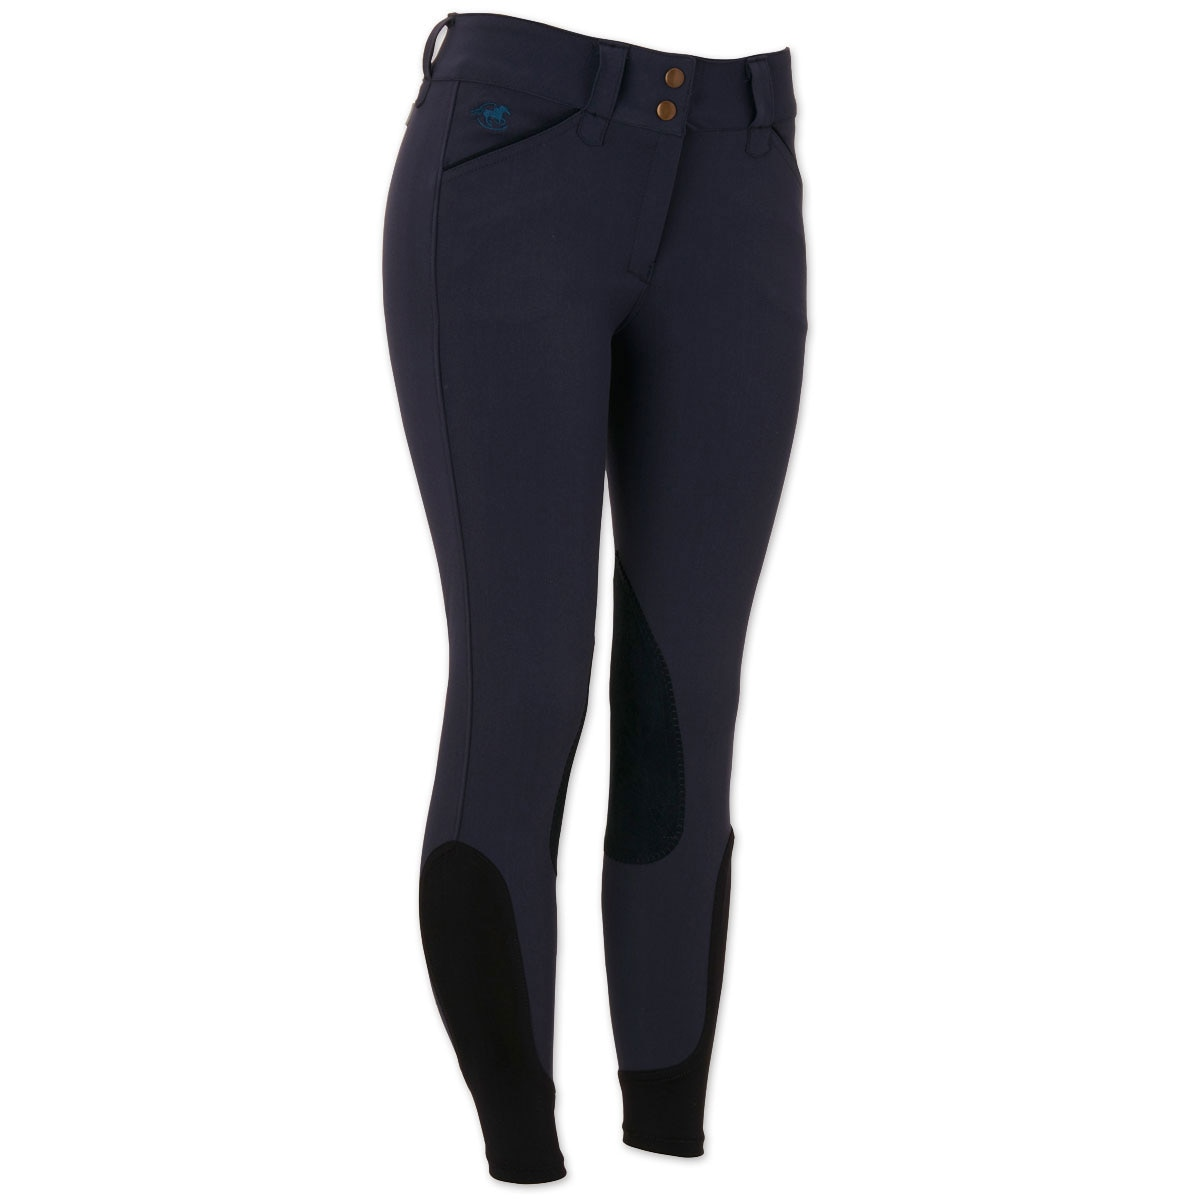 Piper Breeches by SmartPak - Classic Front Zip Knee Patch- Sale!